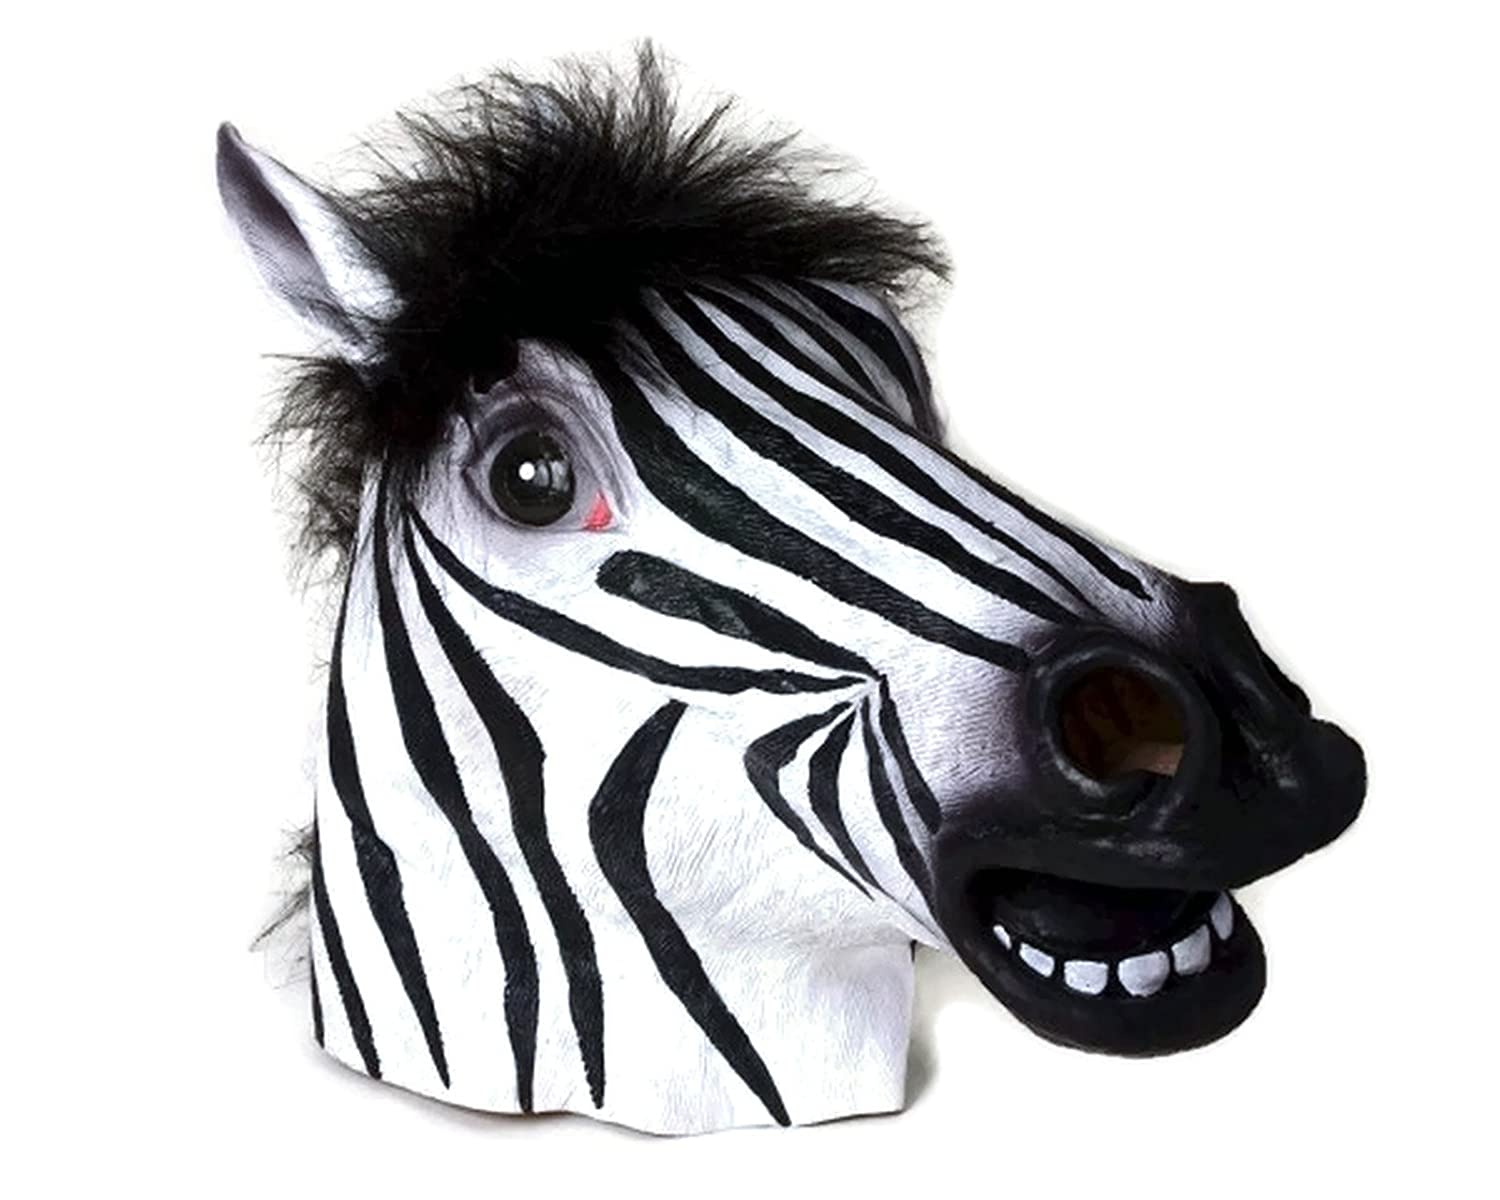 Zebra Mask : Latex Animal Mask op7 6av3 607 1jc20 0ax1 button mask